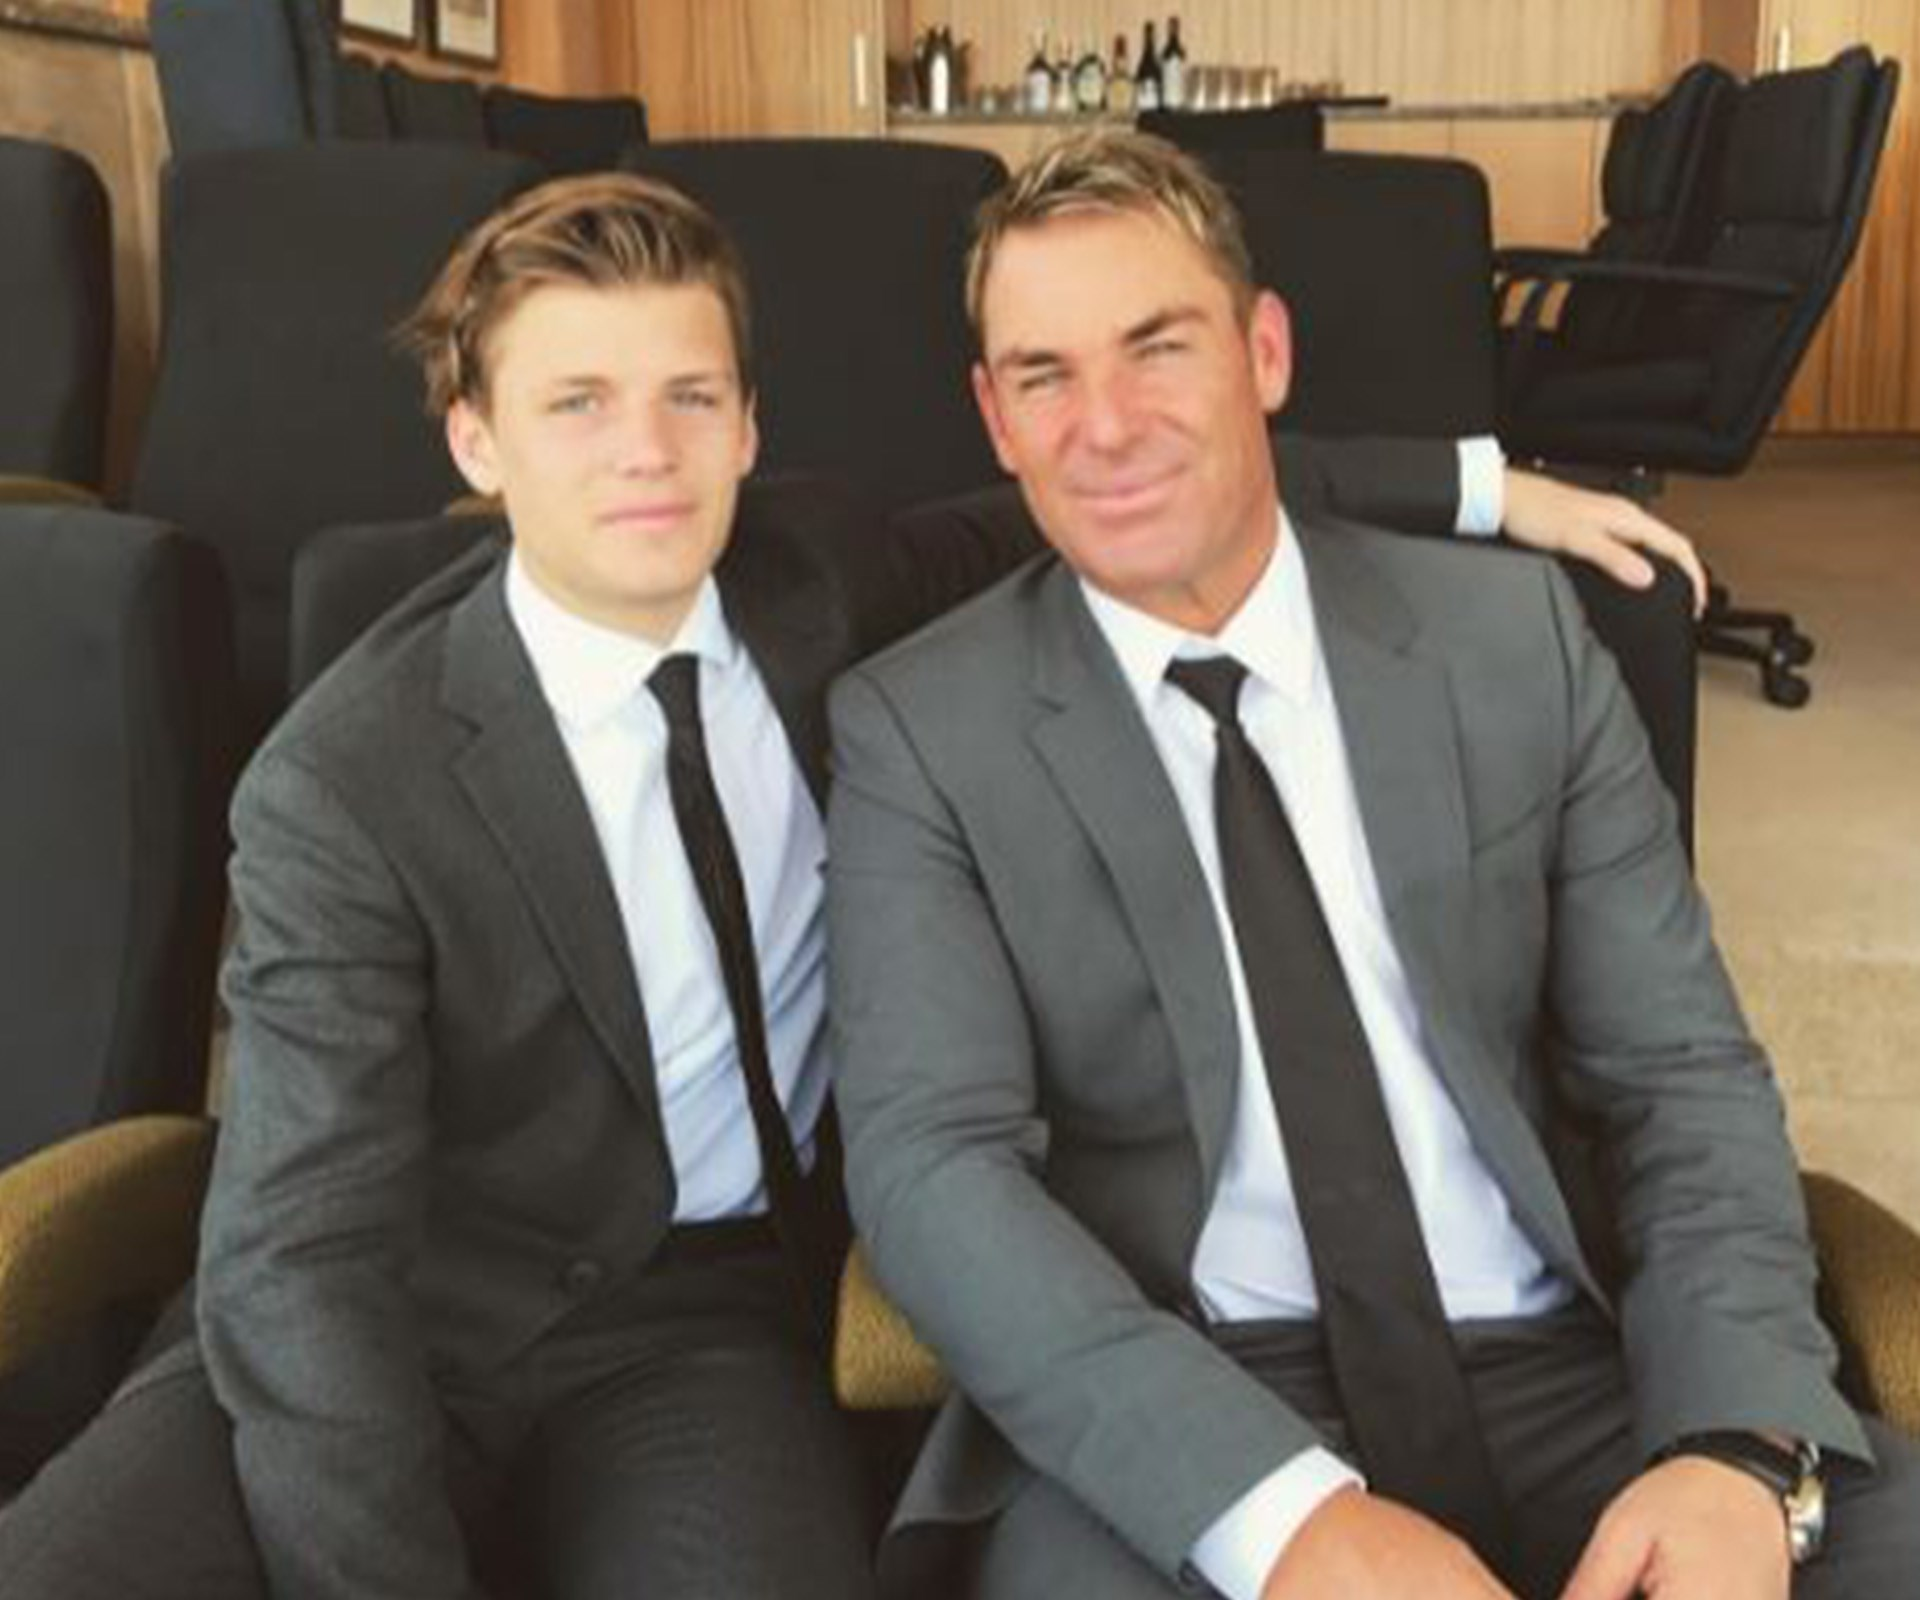 Shane Warne and his son Jackson not only look alike, but they dress alike, too!